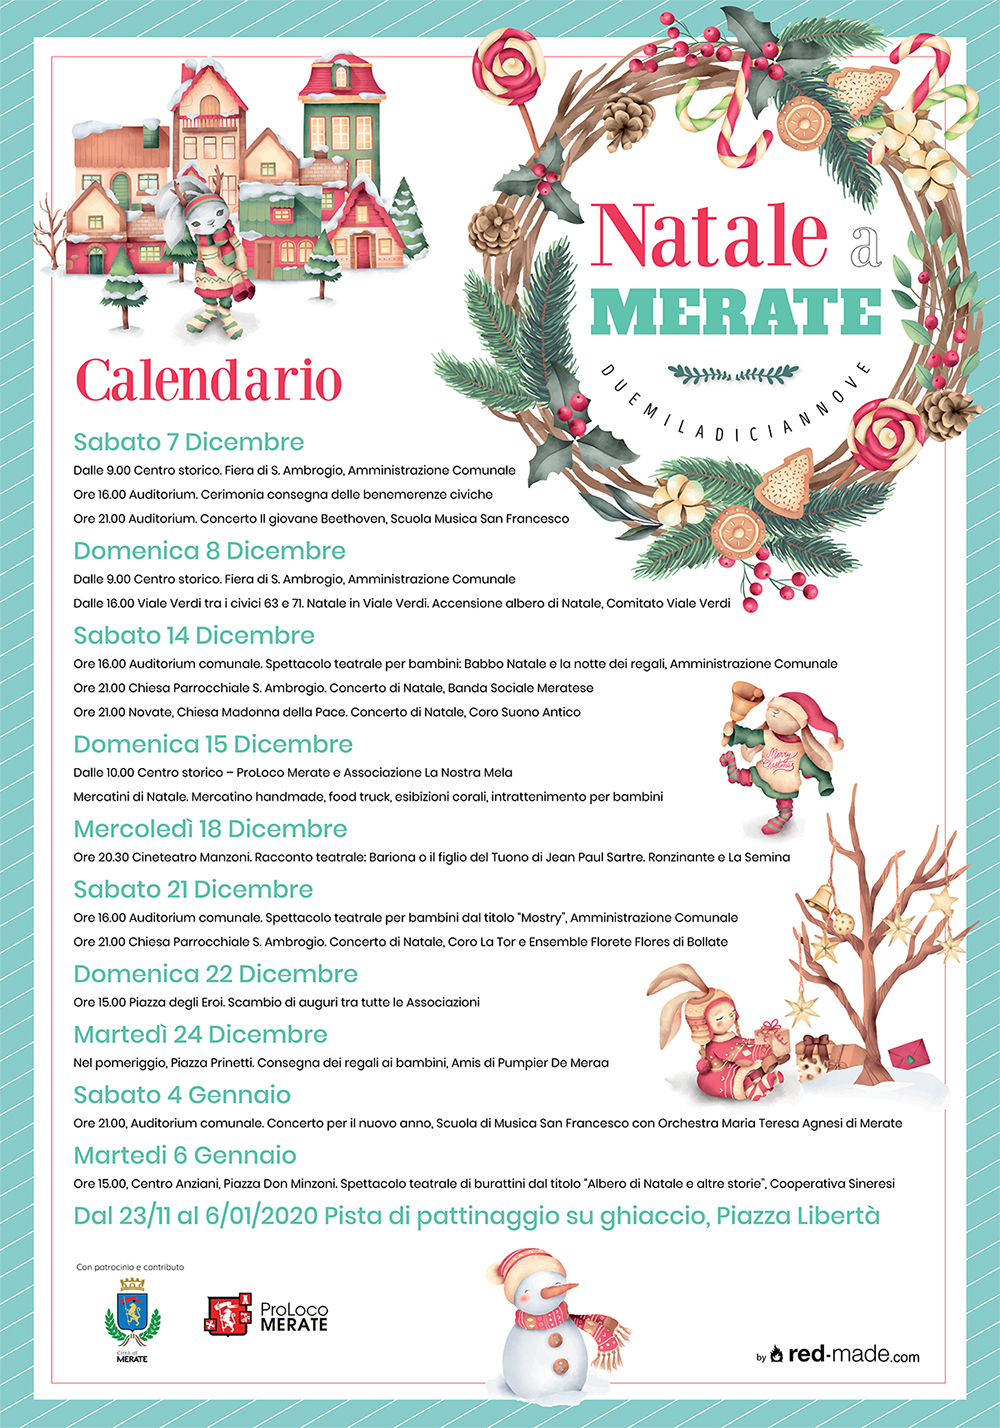 Natale a Merate 2019